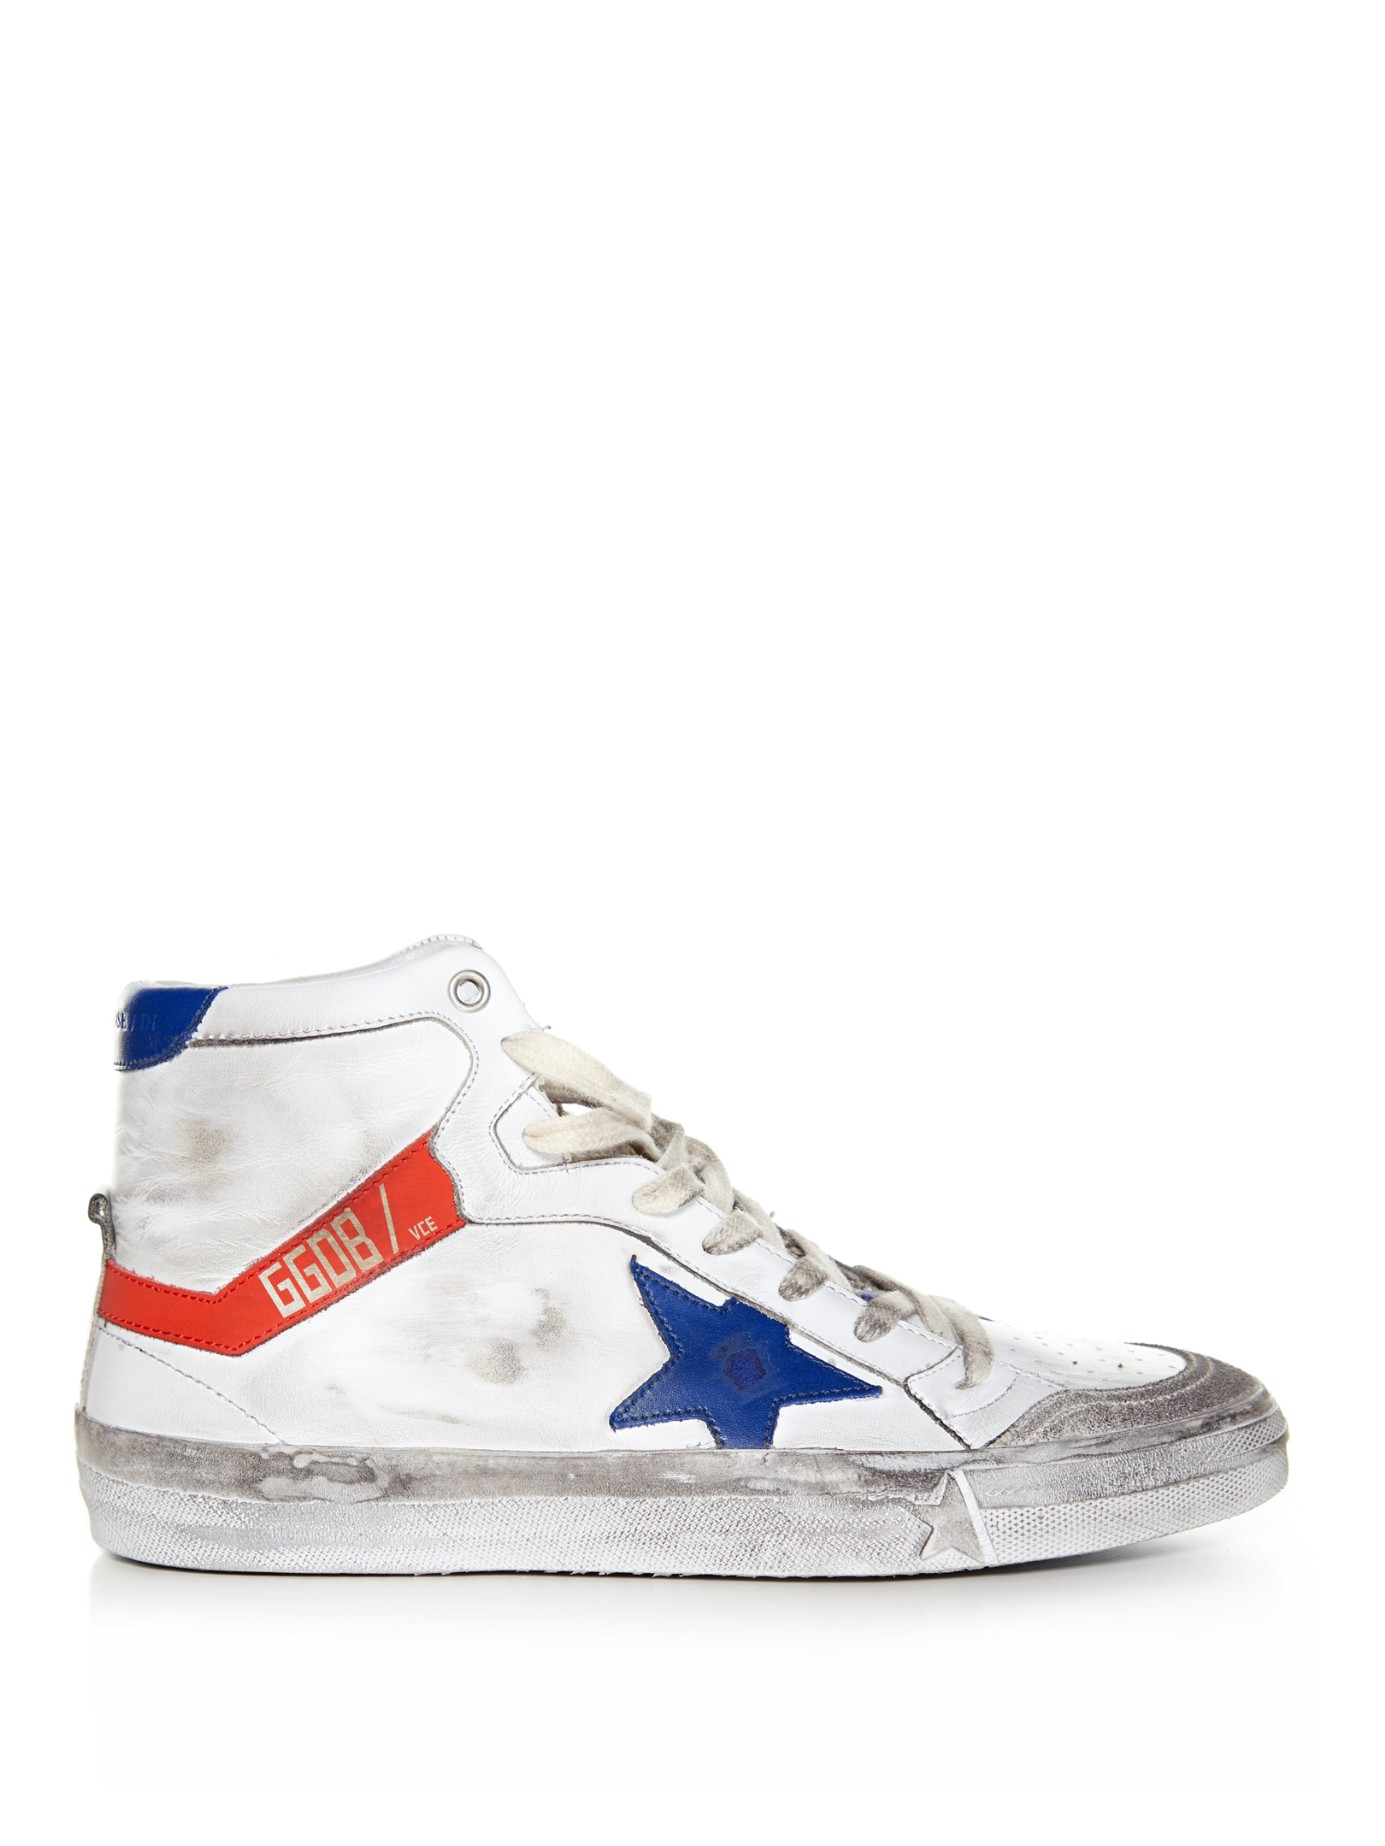 Lyst Golden Goose Deluxe Brand 2 12 High Top Leather